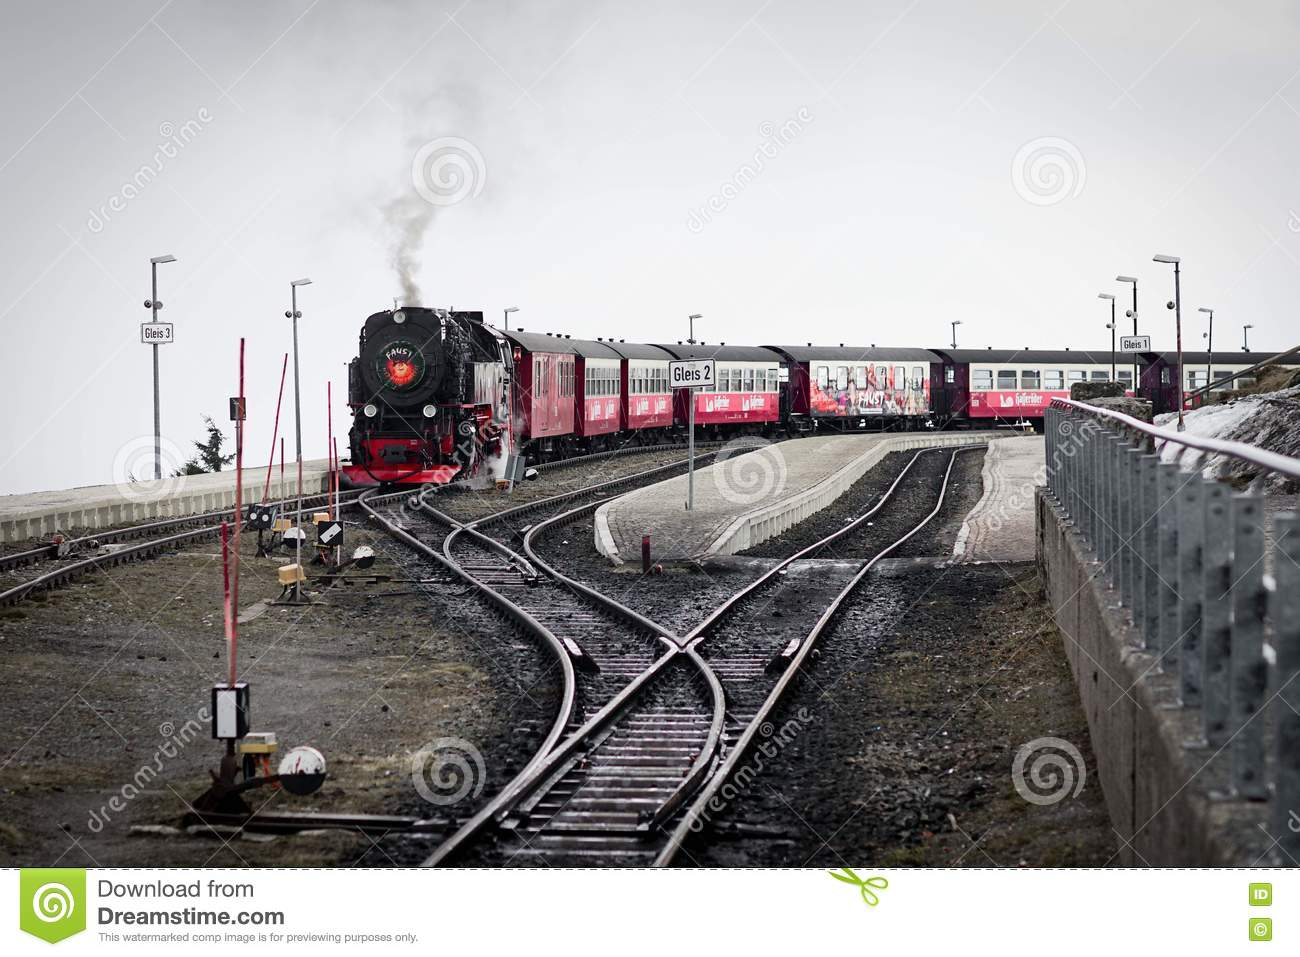 Steam Train, Broken, Harzberg, Germany Editorial Image.